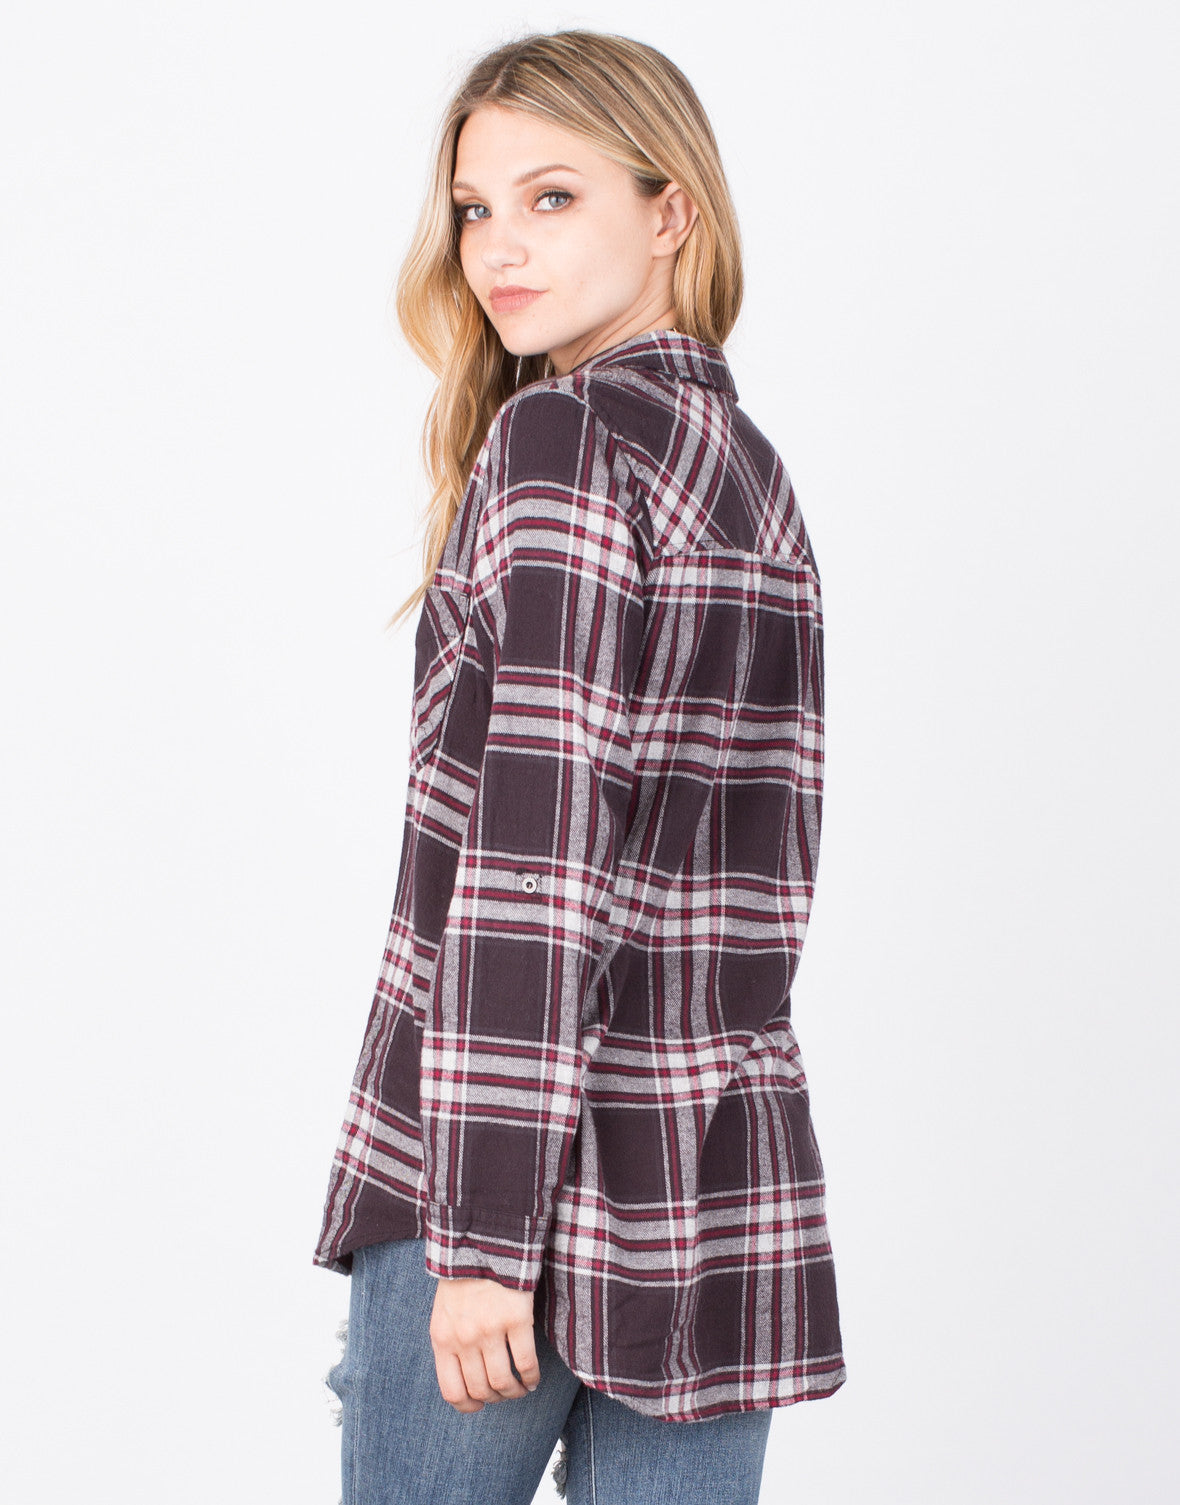 Back View of Plaid Flannel Top